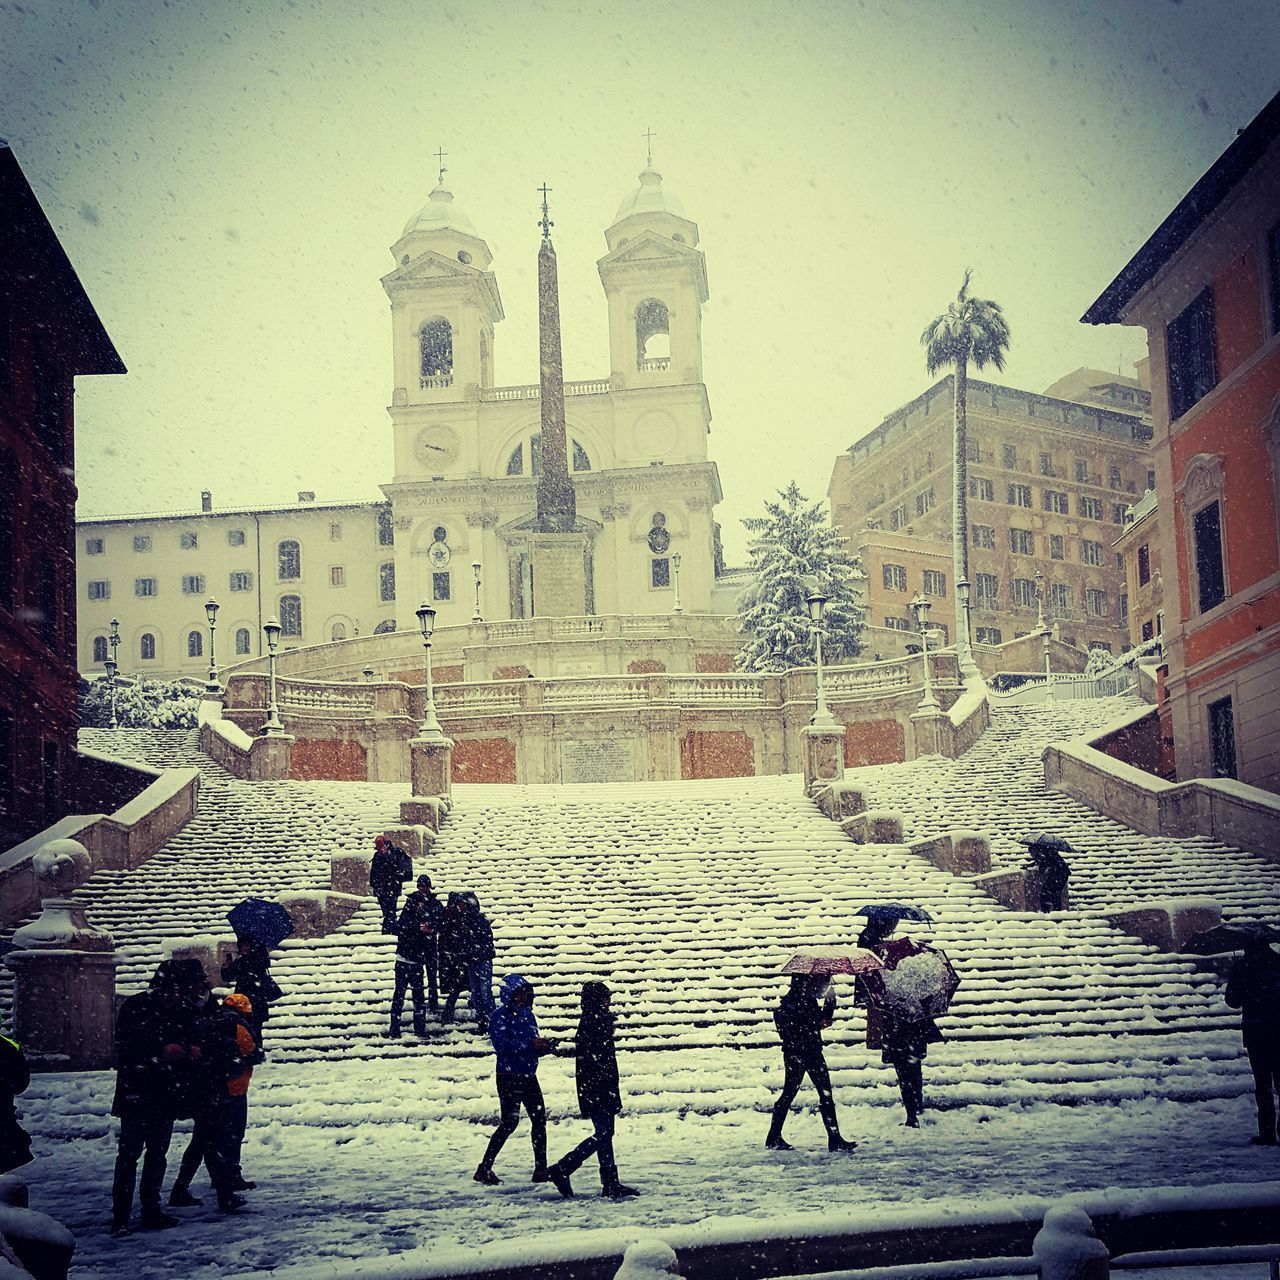 architecture, built structure, building exterior, group of people, building, real people, religion, place of worship, city, women, nature, belief, winter, sky, lifestyles, spirituality, large group of people, cold temperature, outdoors, snowing